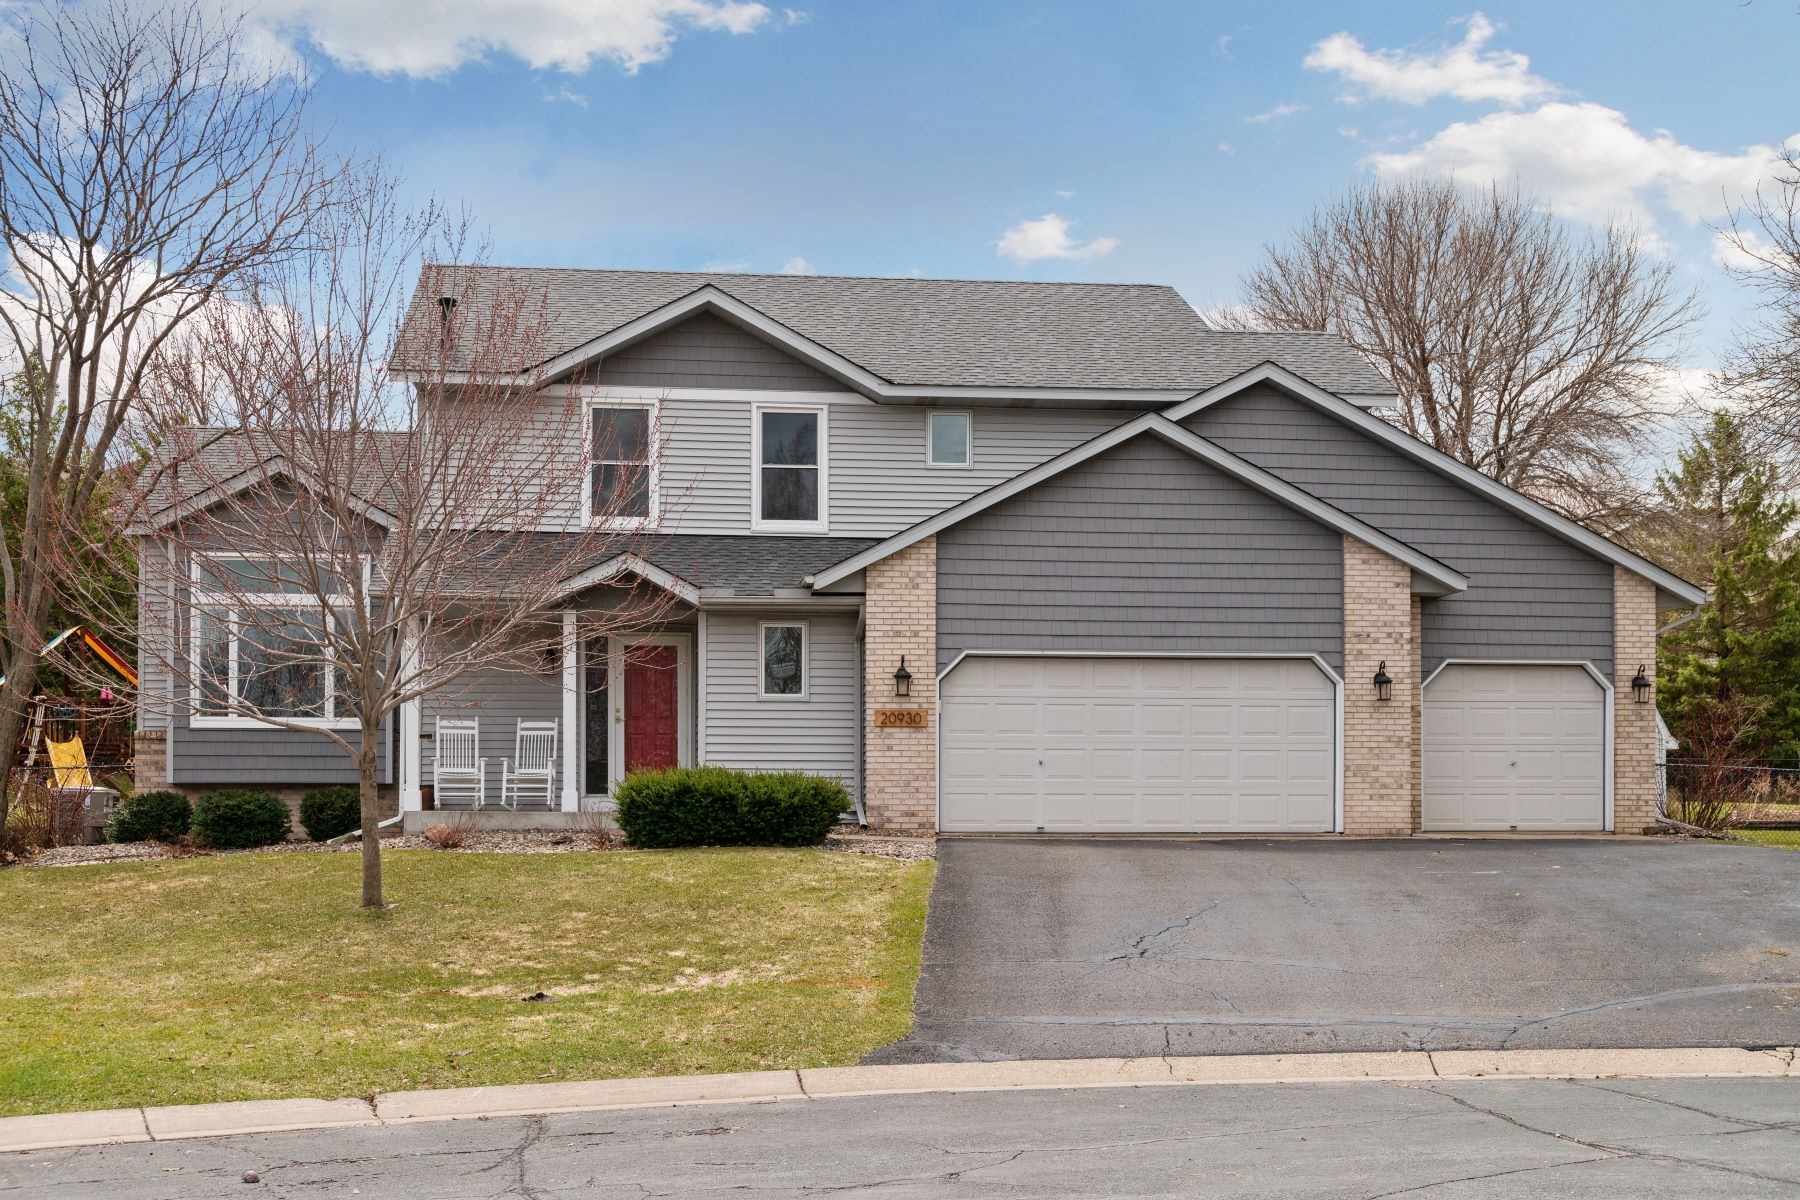 Single Family Homes for Sale at 20930 Jameswood Court Lakeville, Minnesota 55044 United States